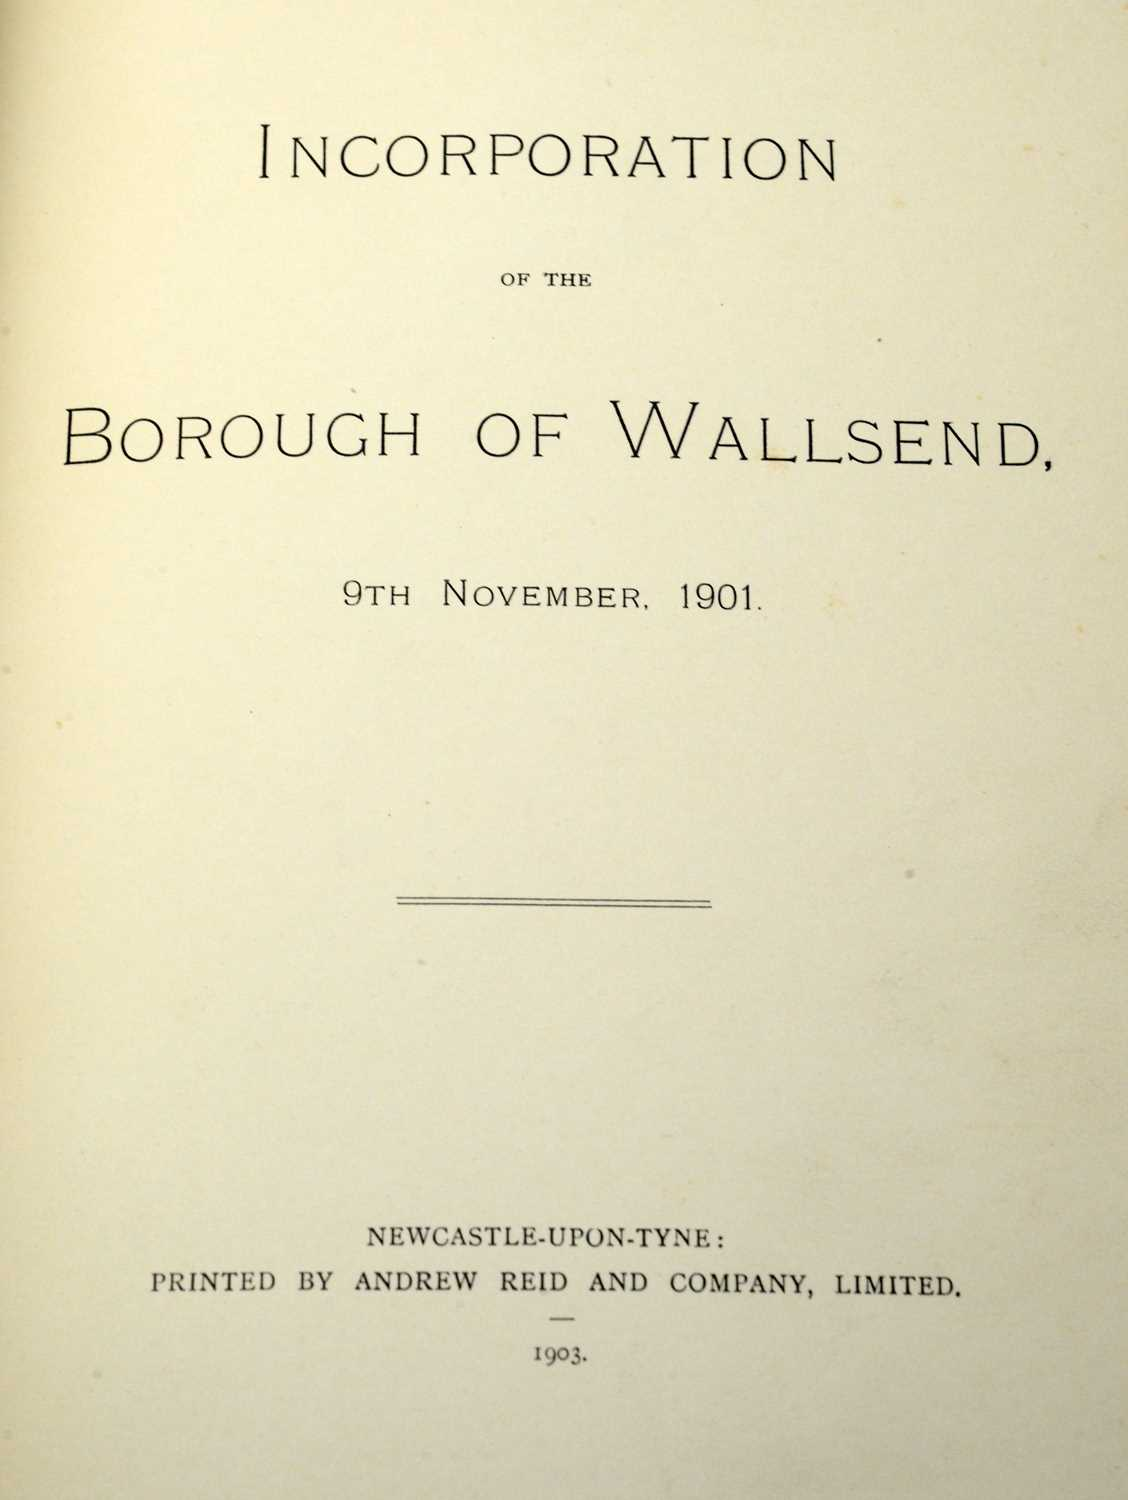 Books on the History of Newcastle - Image 3 of 3